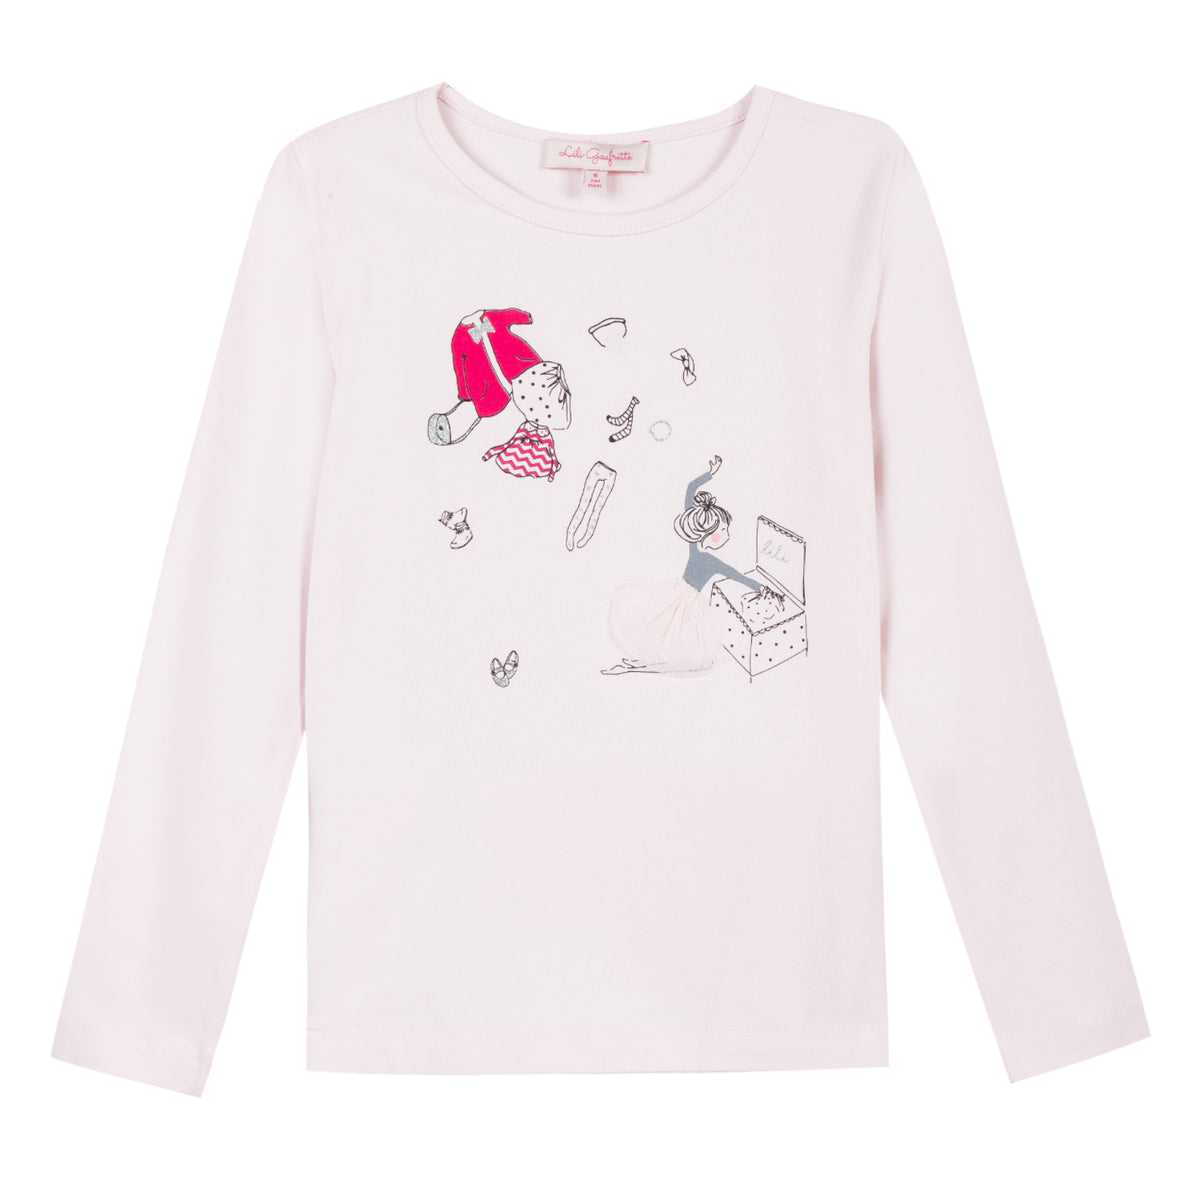 Toddler Girls Pink Graphic Long Sleeve Top